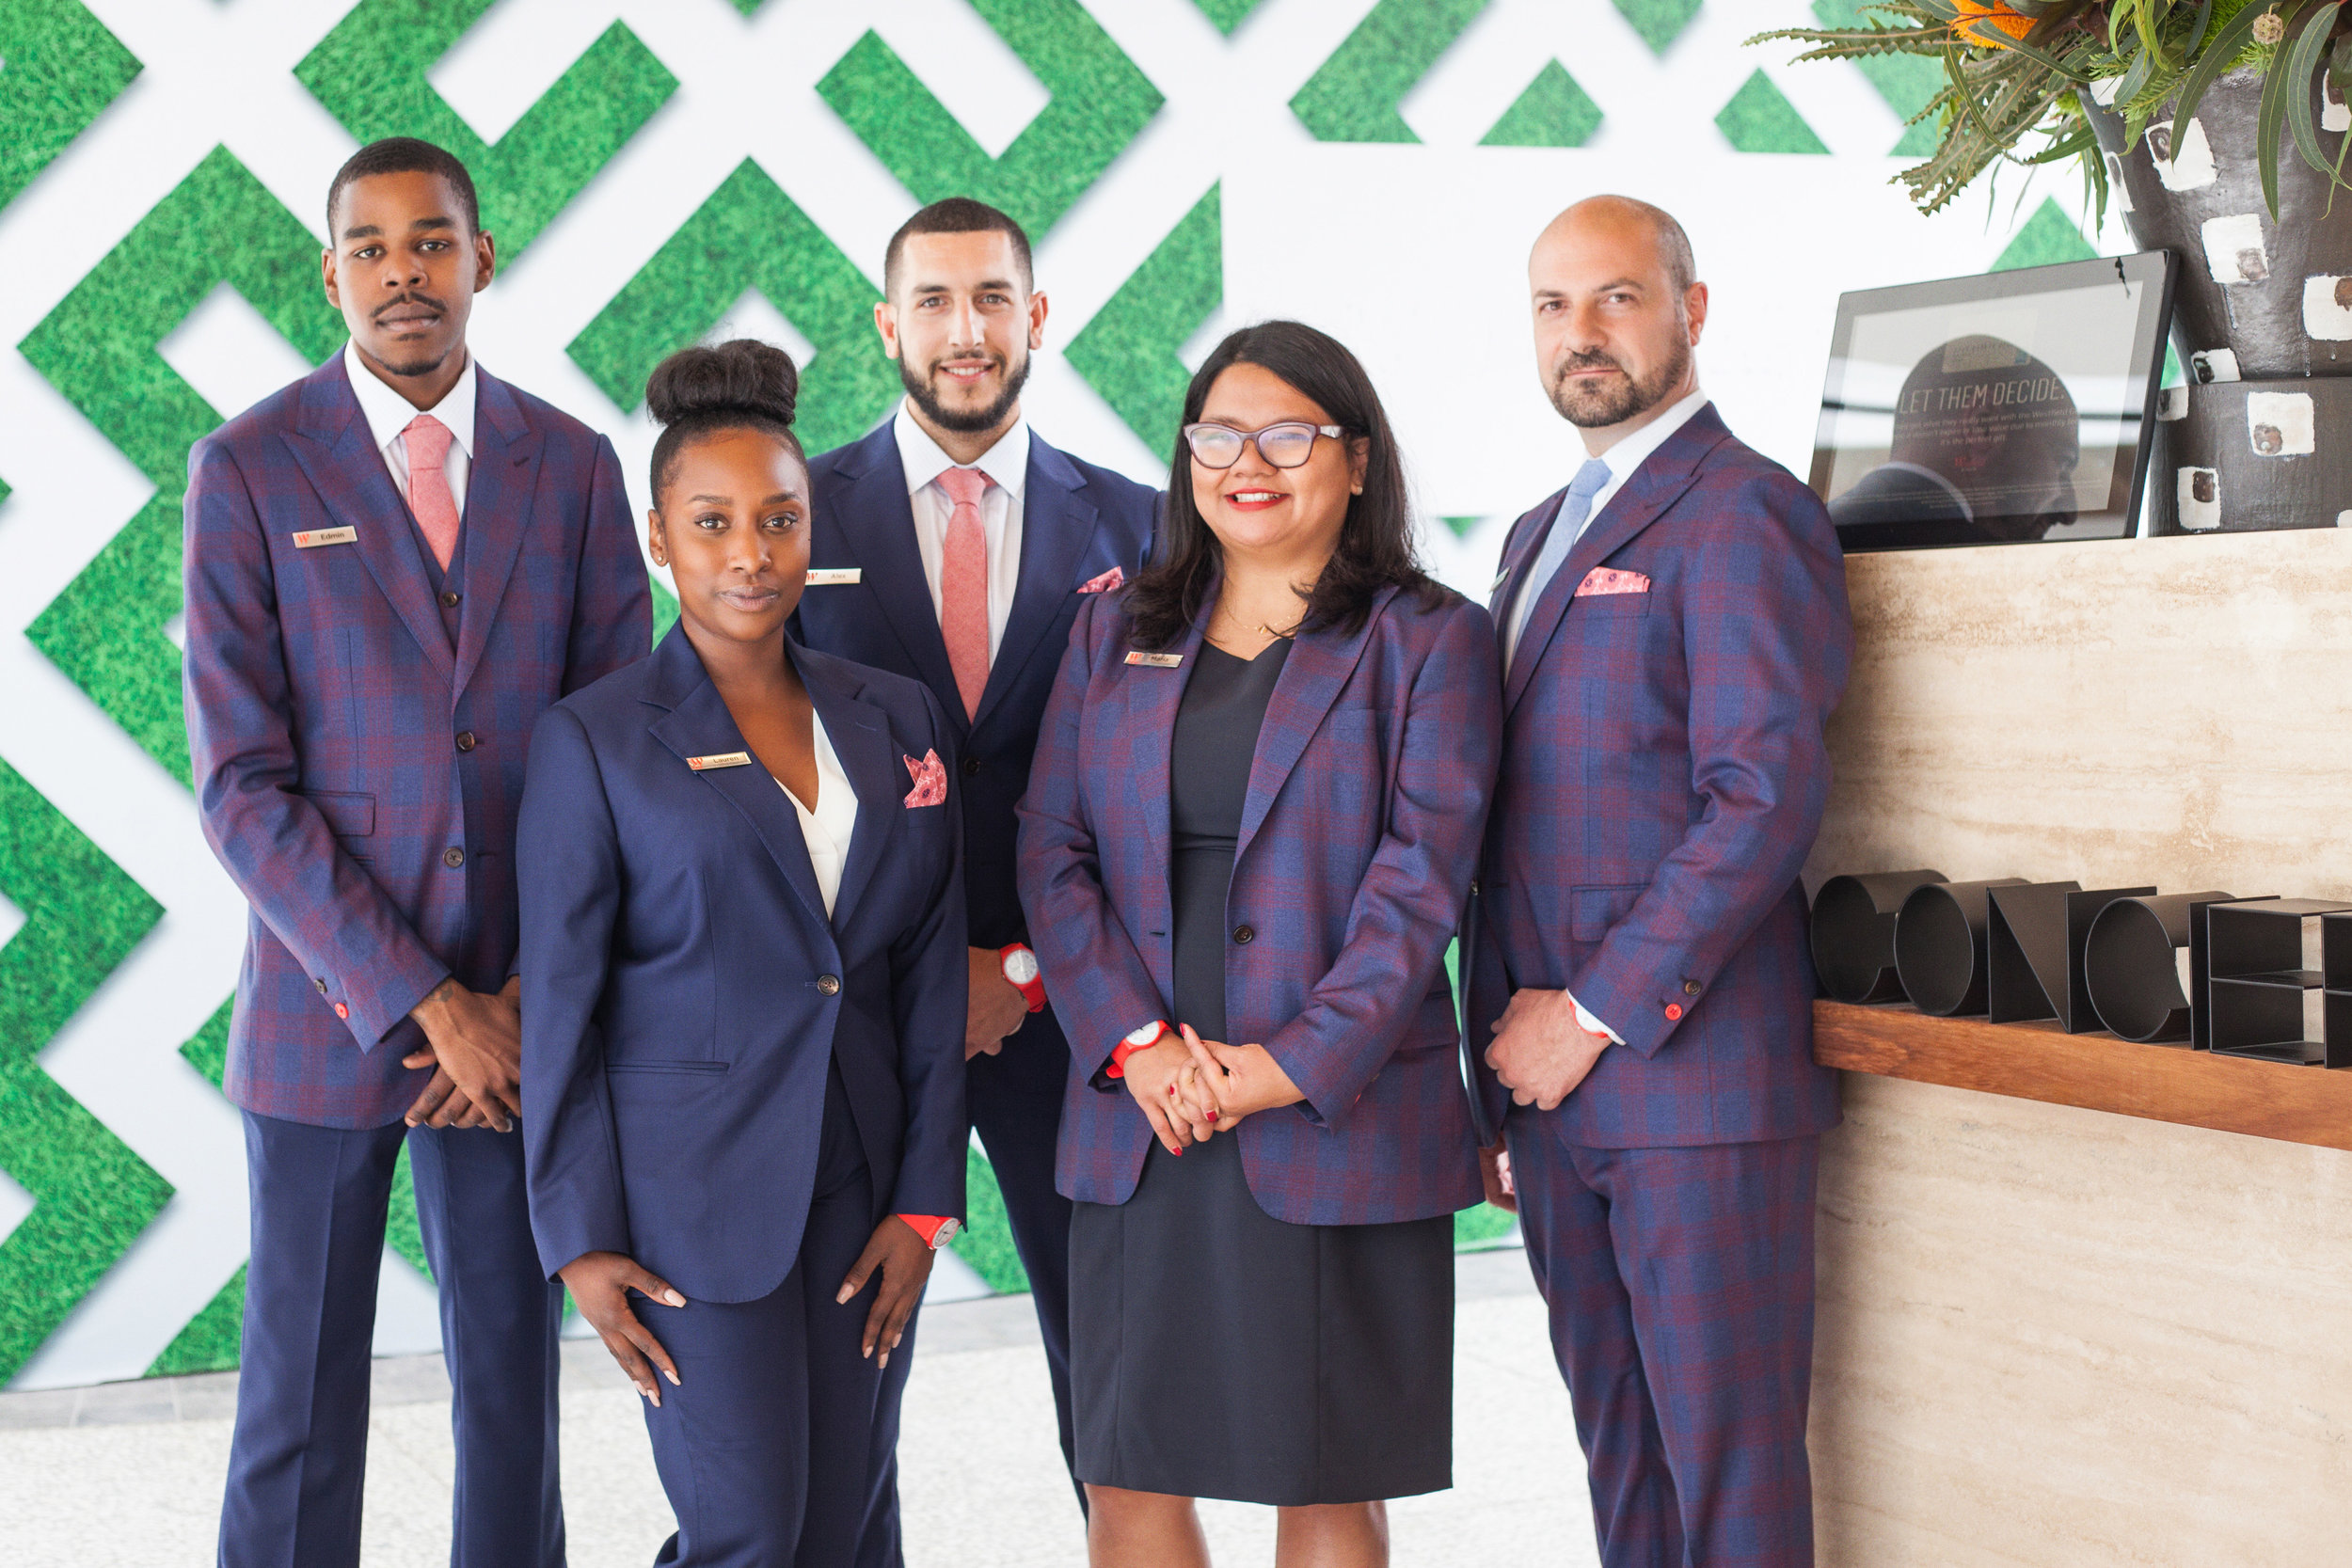 Westfield Century City Concierge team in custom suiting. Red accents play to iconic brand color